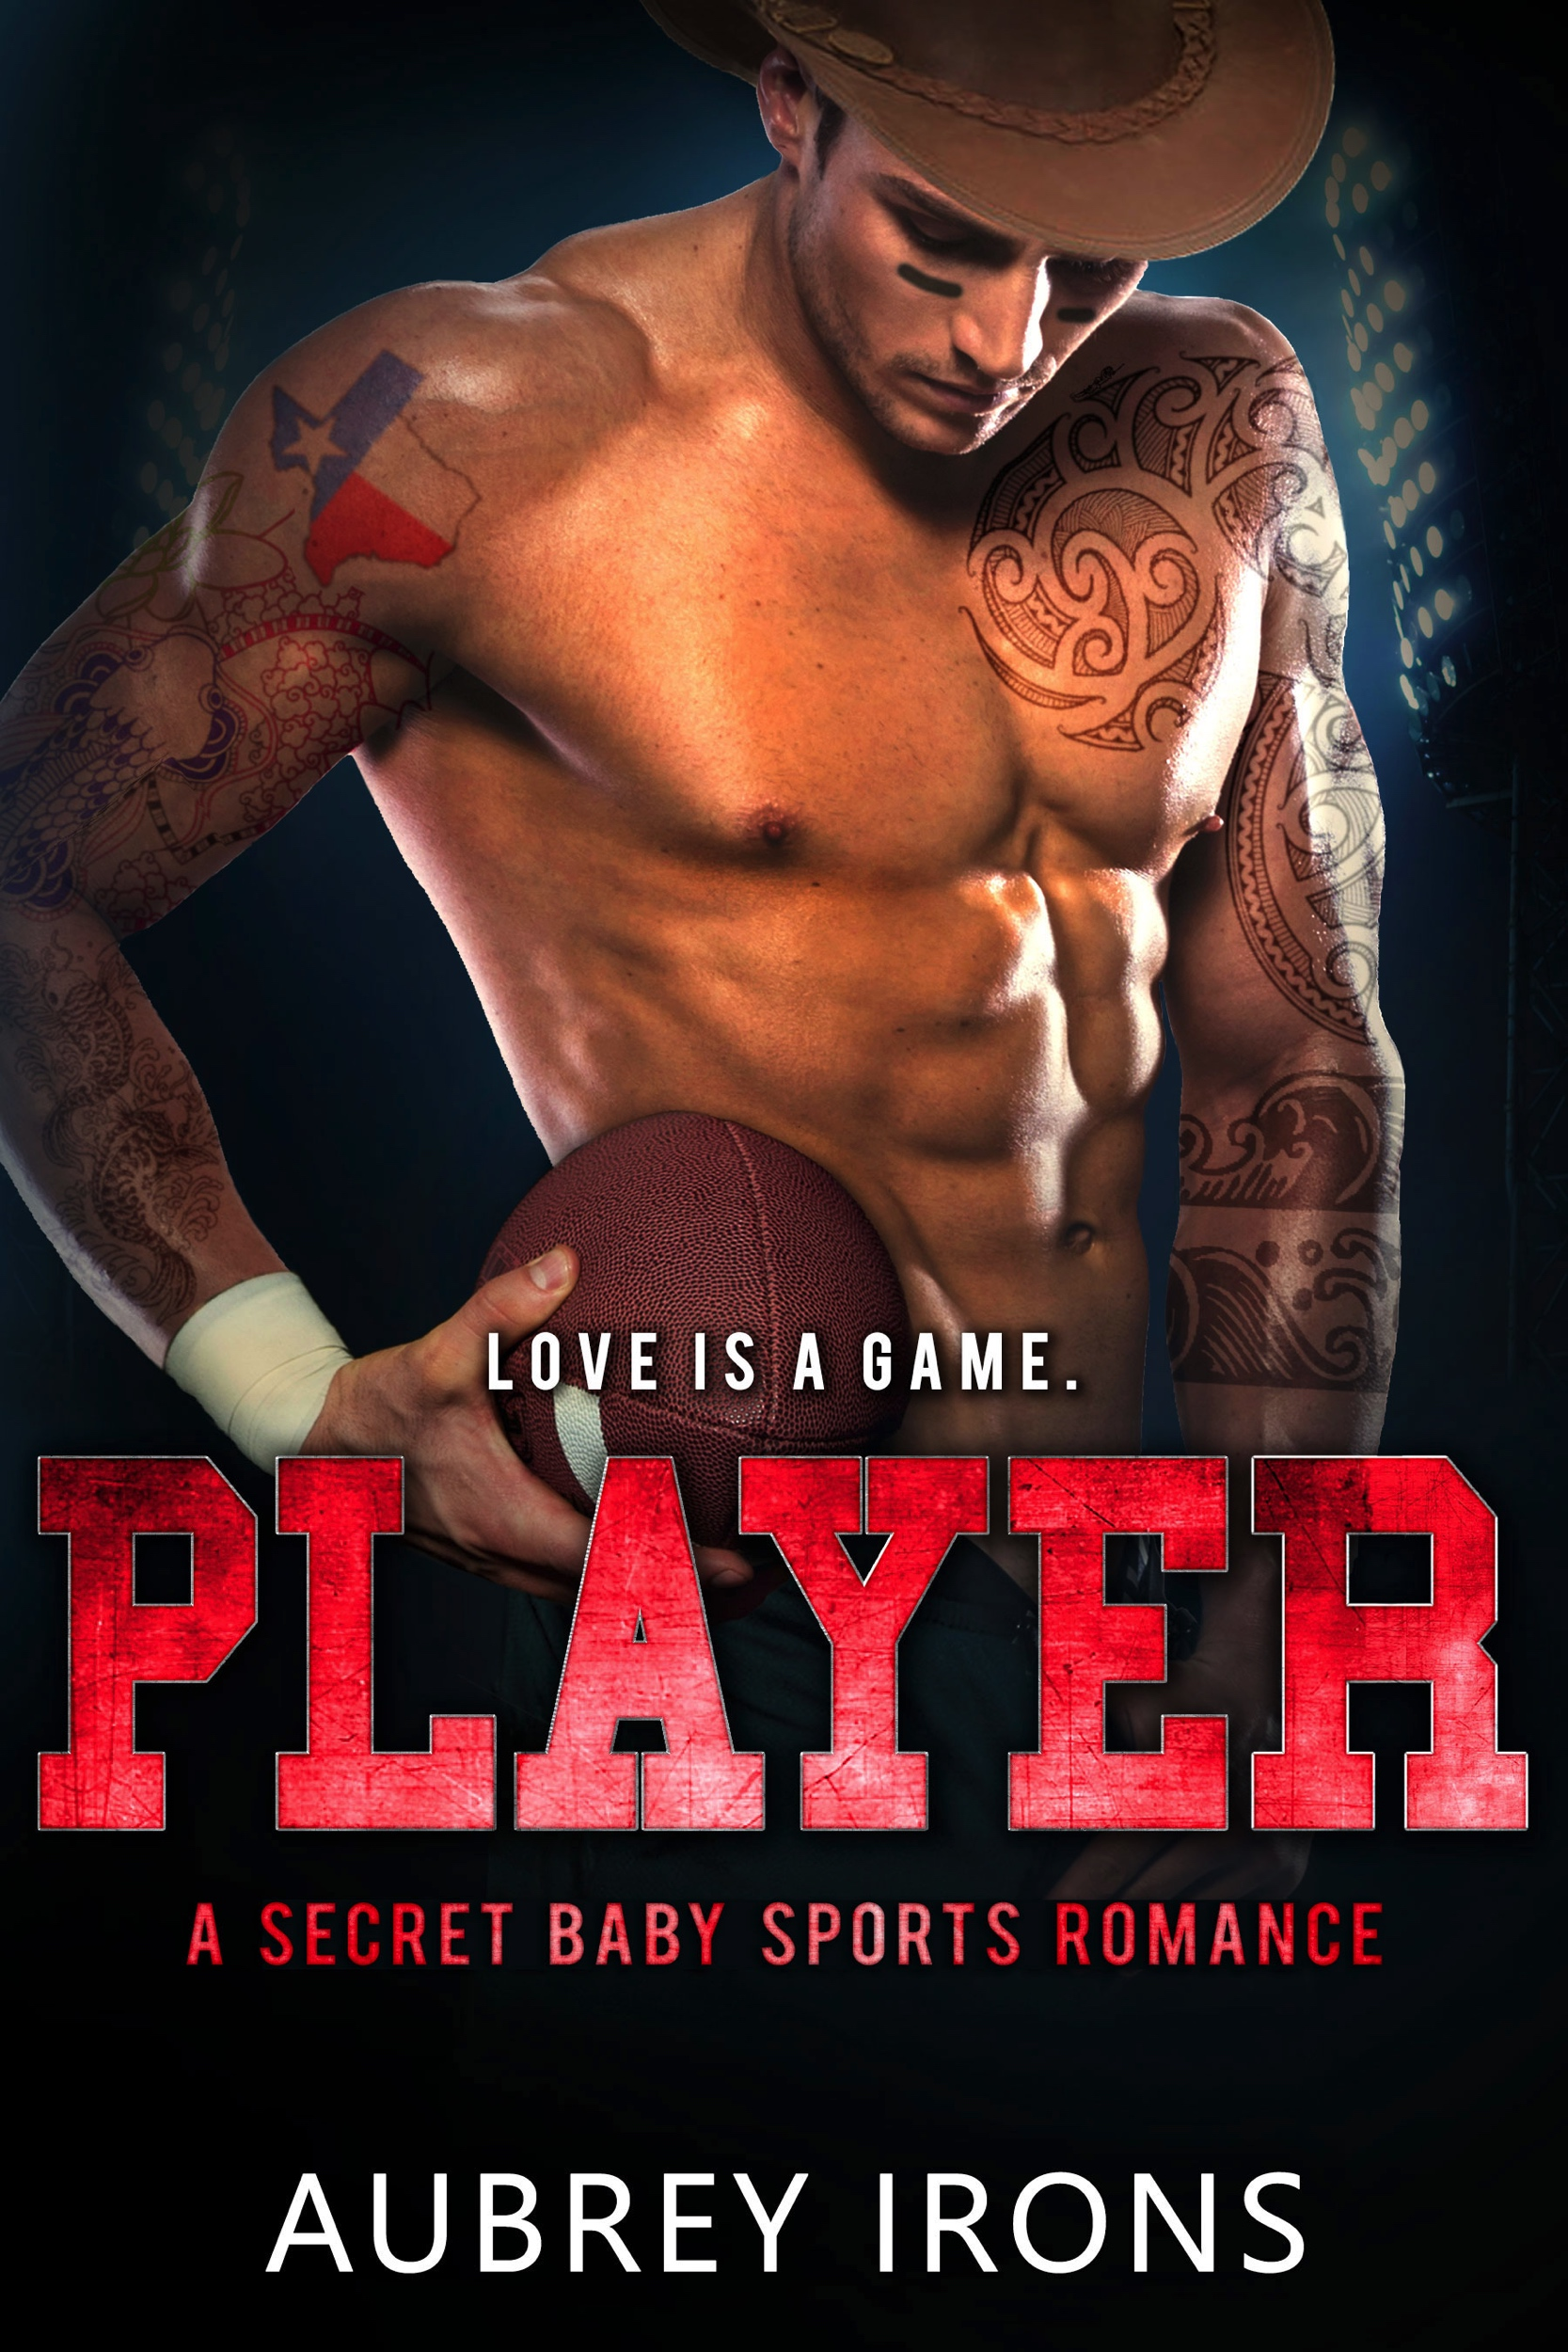 Player-A-Secret-Baby-Sports-Romance-Kindle.jpg